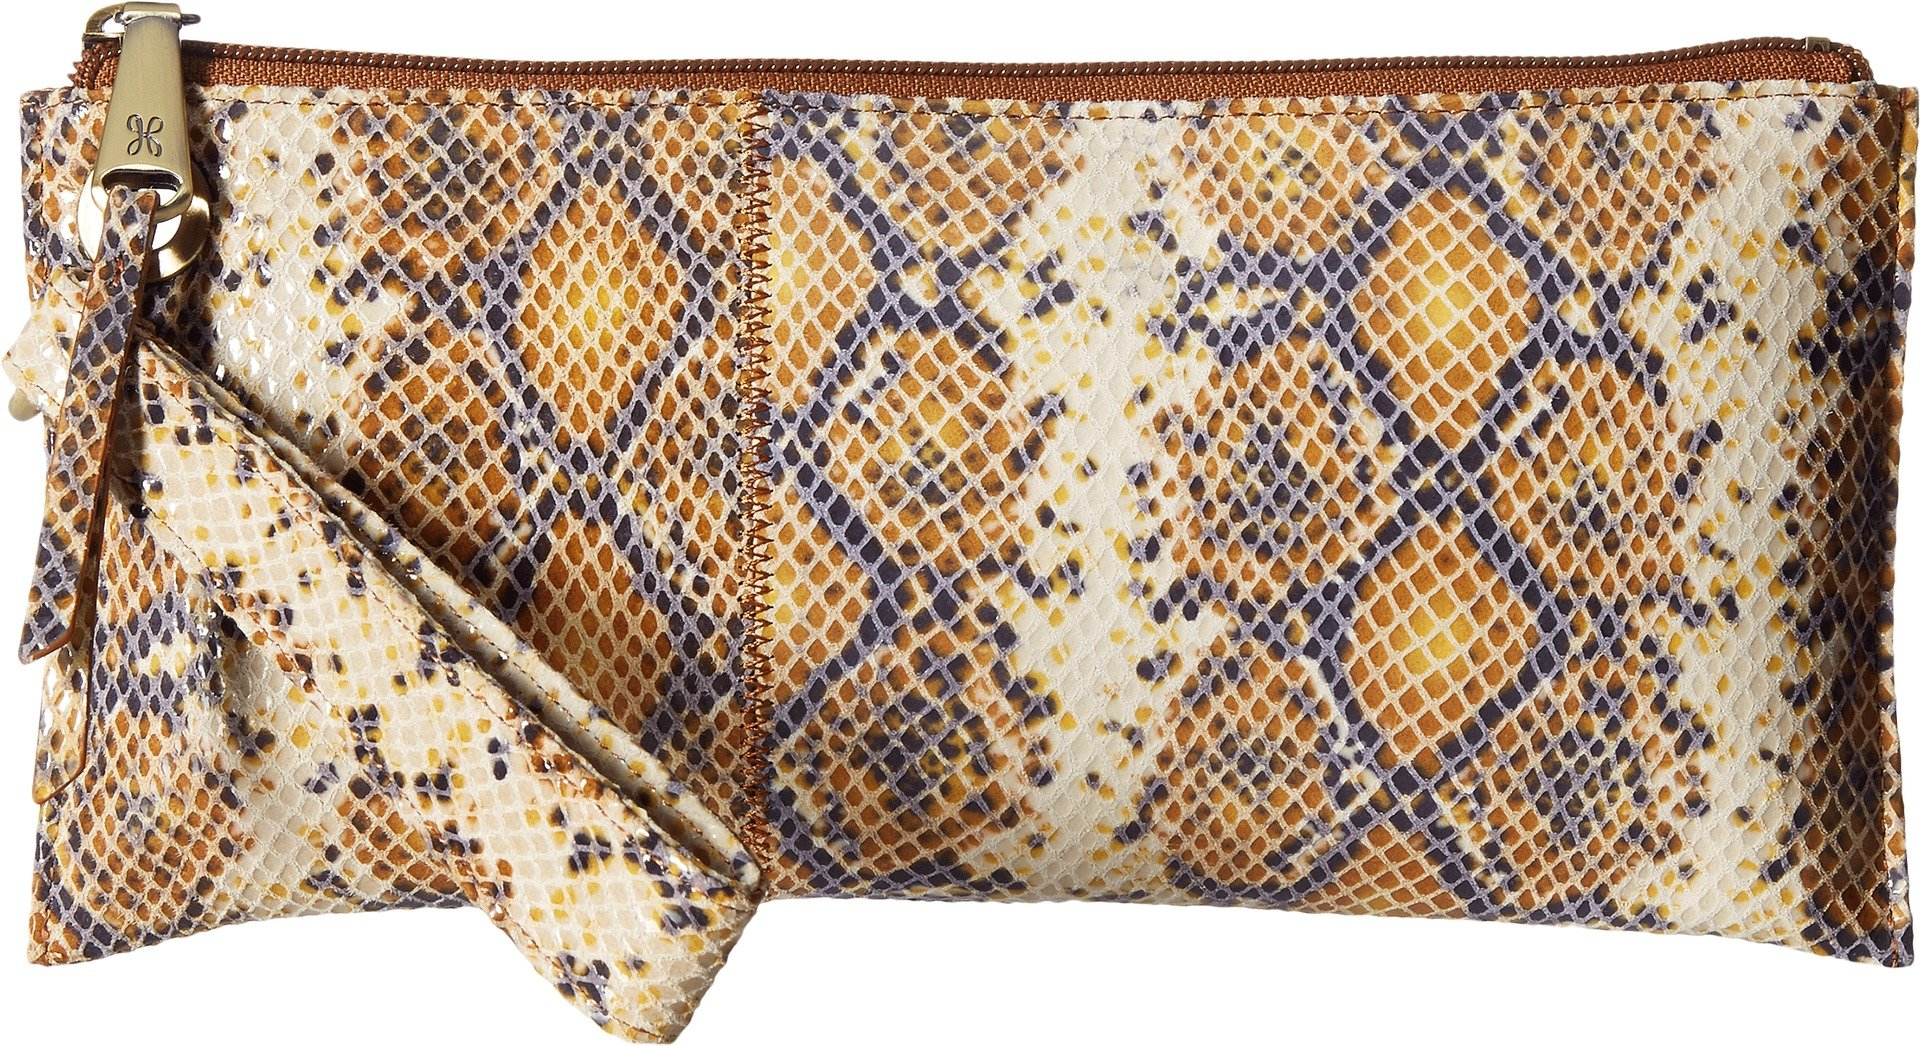 Hobo Women's Vida Harvest Snake Clutch